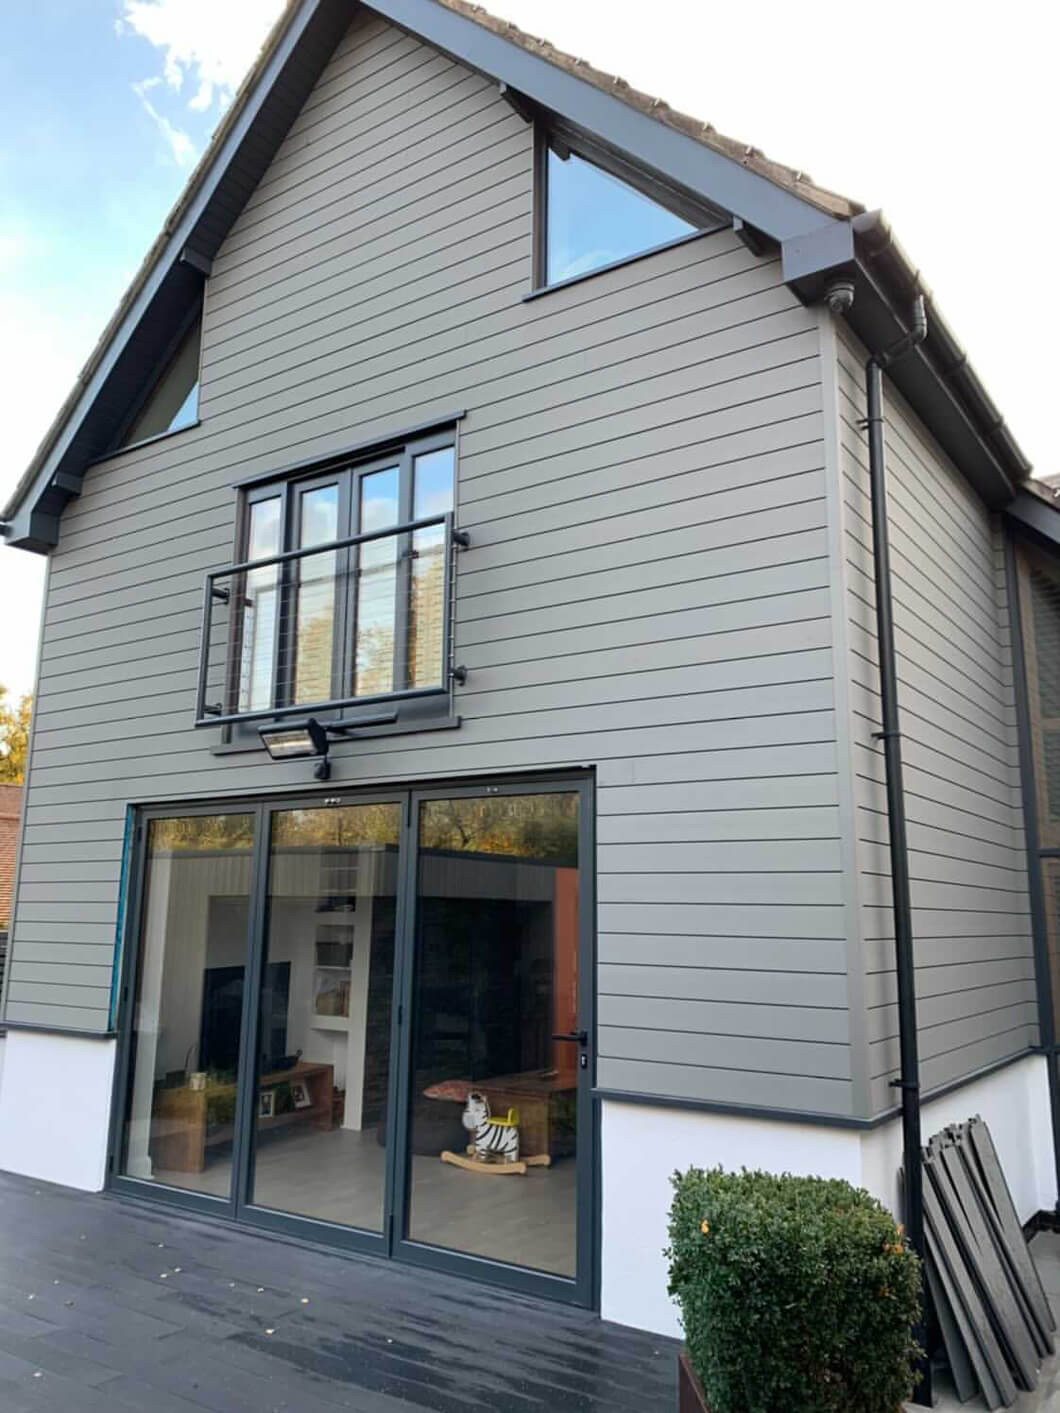 Apex Carpentry & Joinery Ltd transform home exterior with Composite Wall Cladding